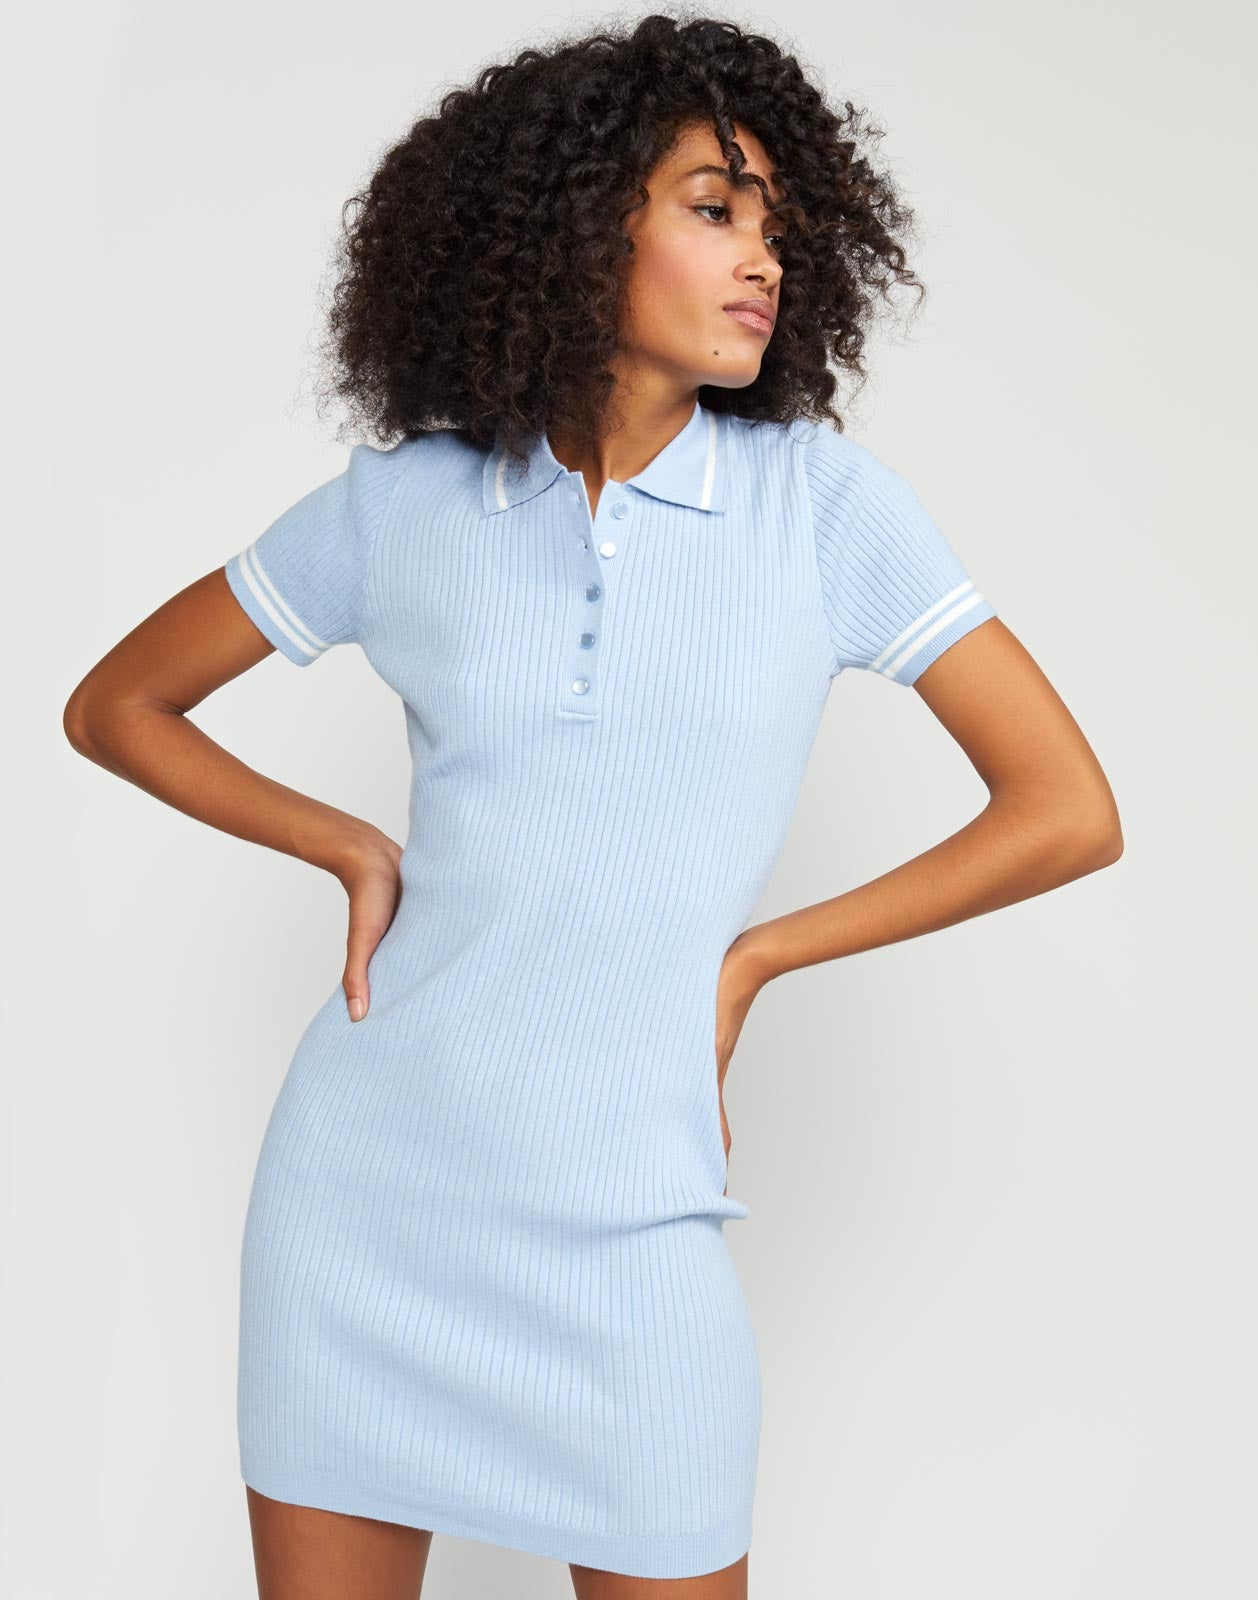 Aqua Rib Knit Mini Dress